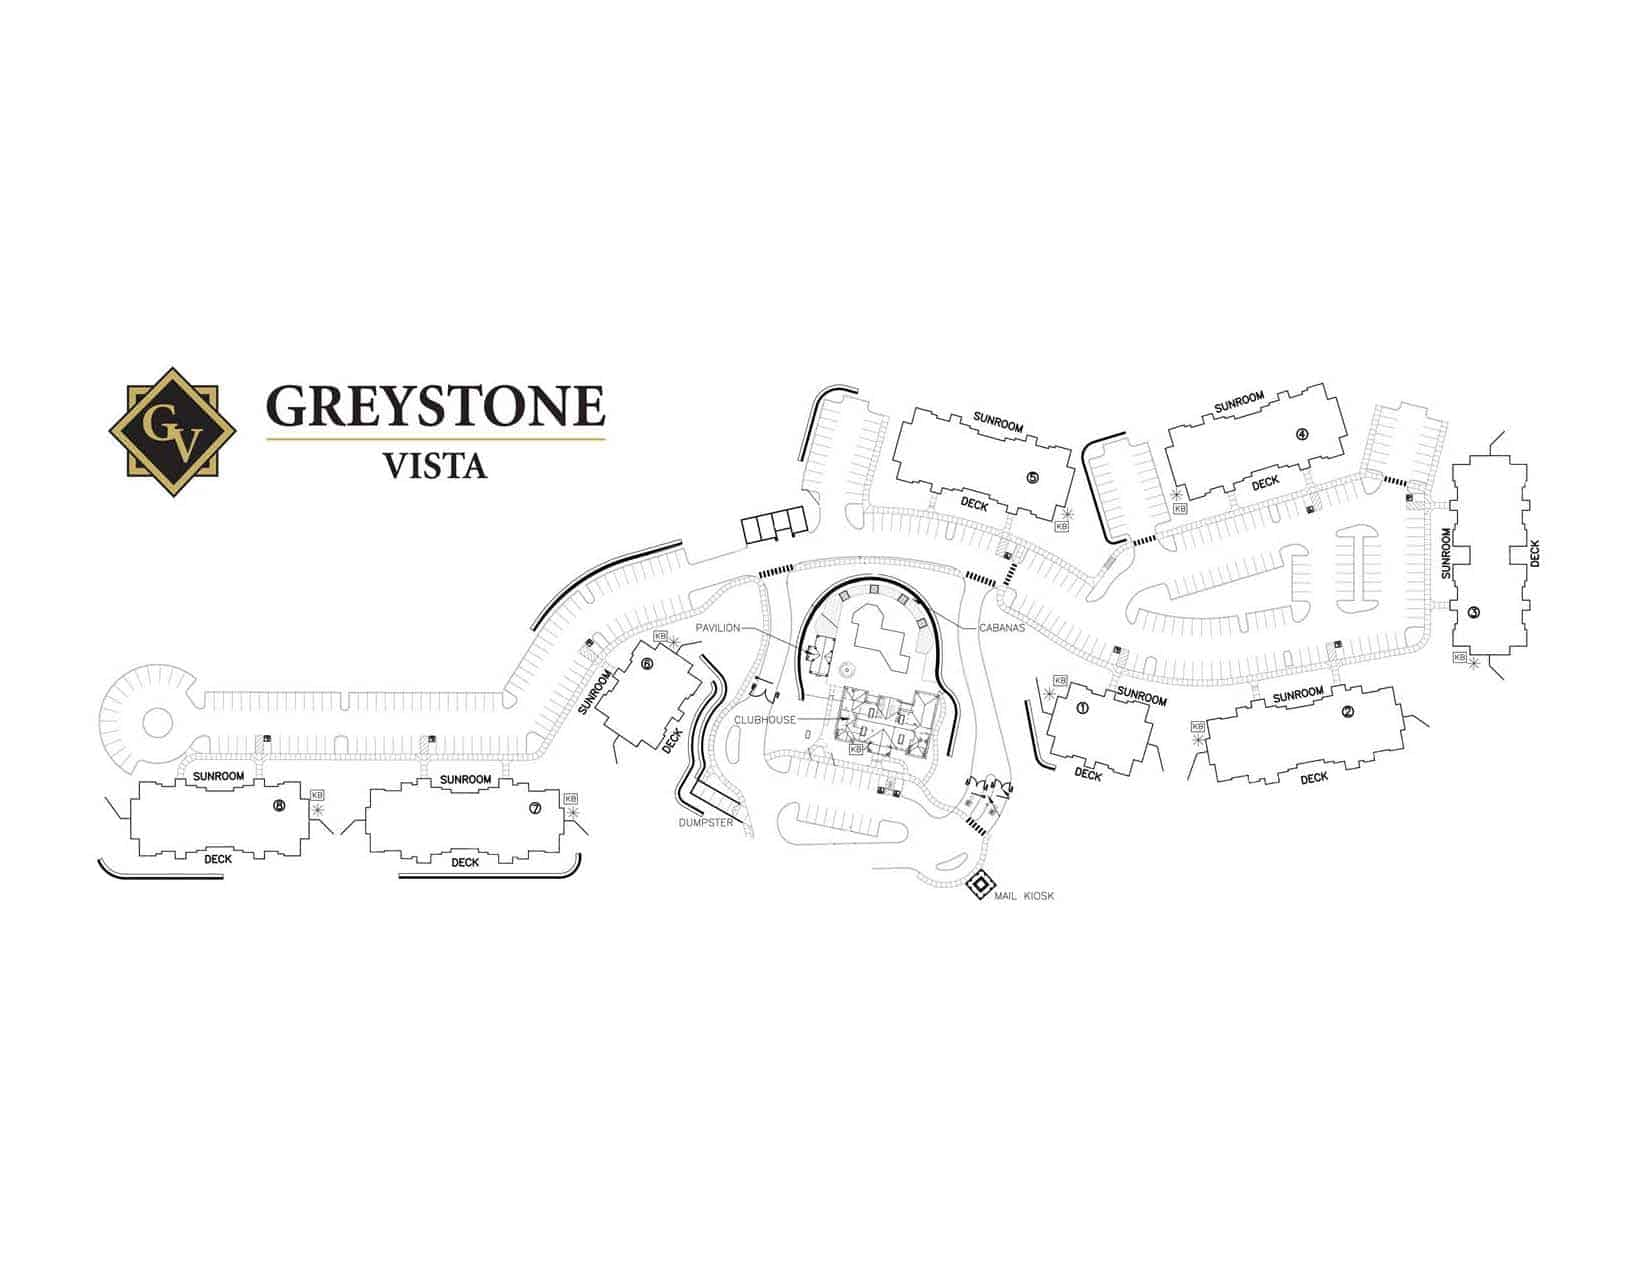 Greystone Properties Apartments Vista Knoxville Site Plan